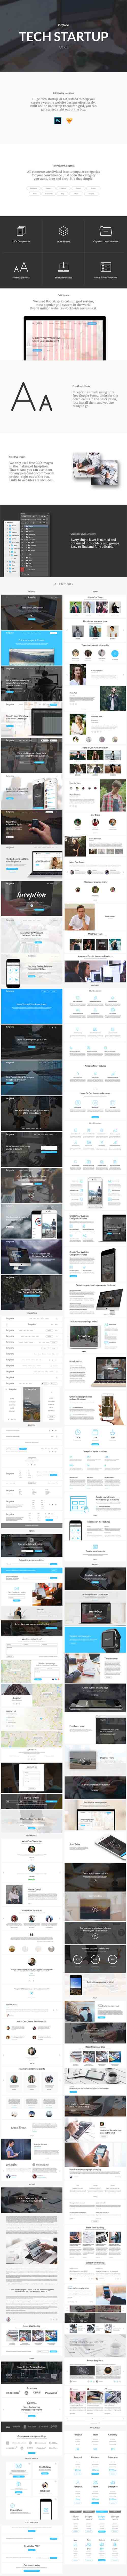 Inception UI Kit - Tech startup UI Kit for any website project